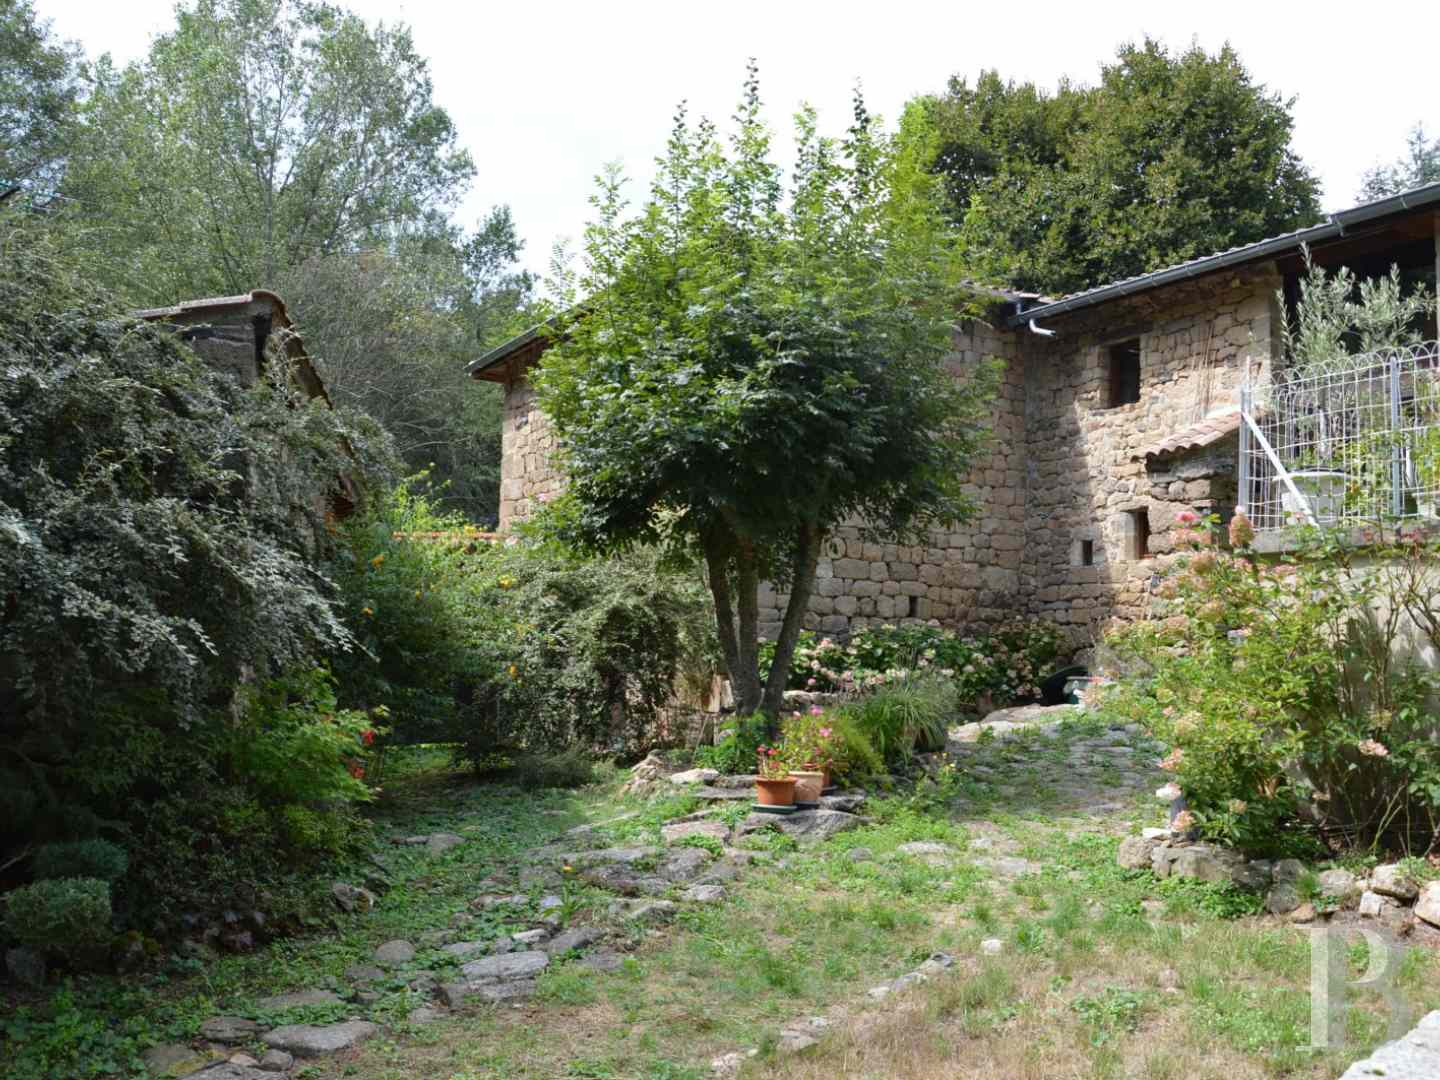 character properties France rhones alps character houses - 2 zoom